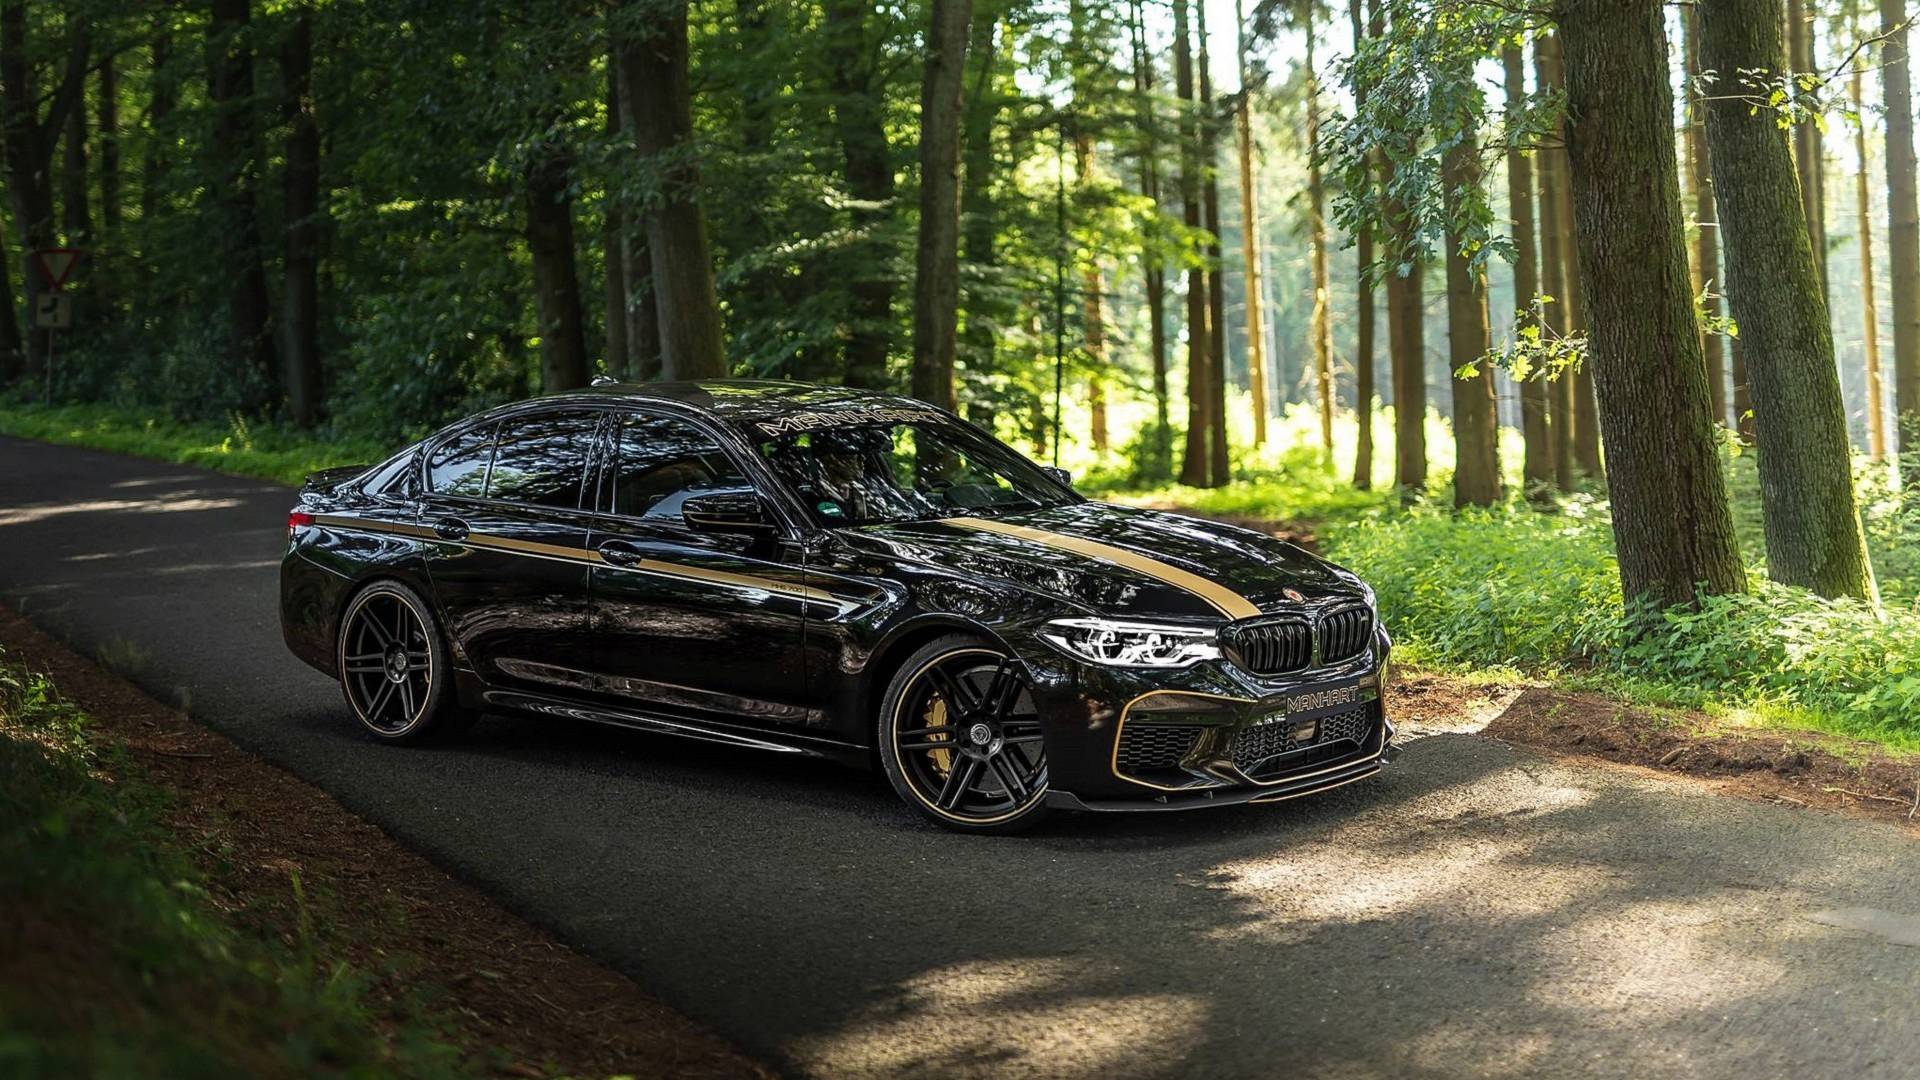 The car tuning shop Manhart has launched the MH5 700 upgrade package meant exclusively for the BMW X5 Competition (F90) sedan